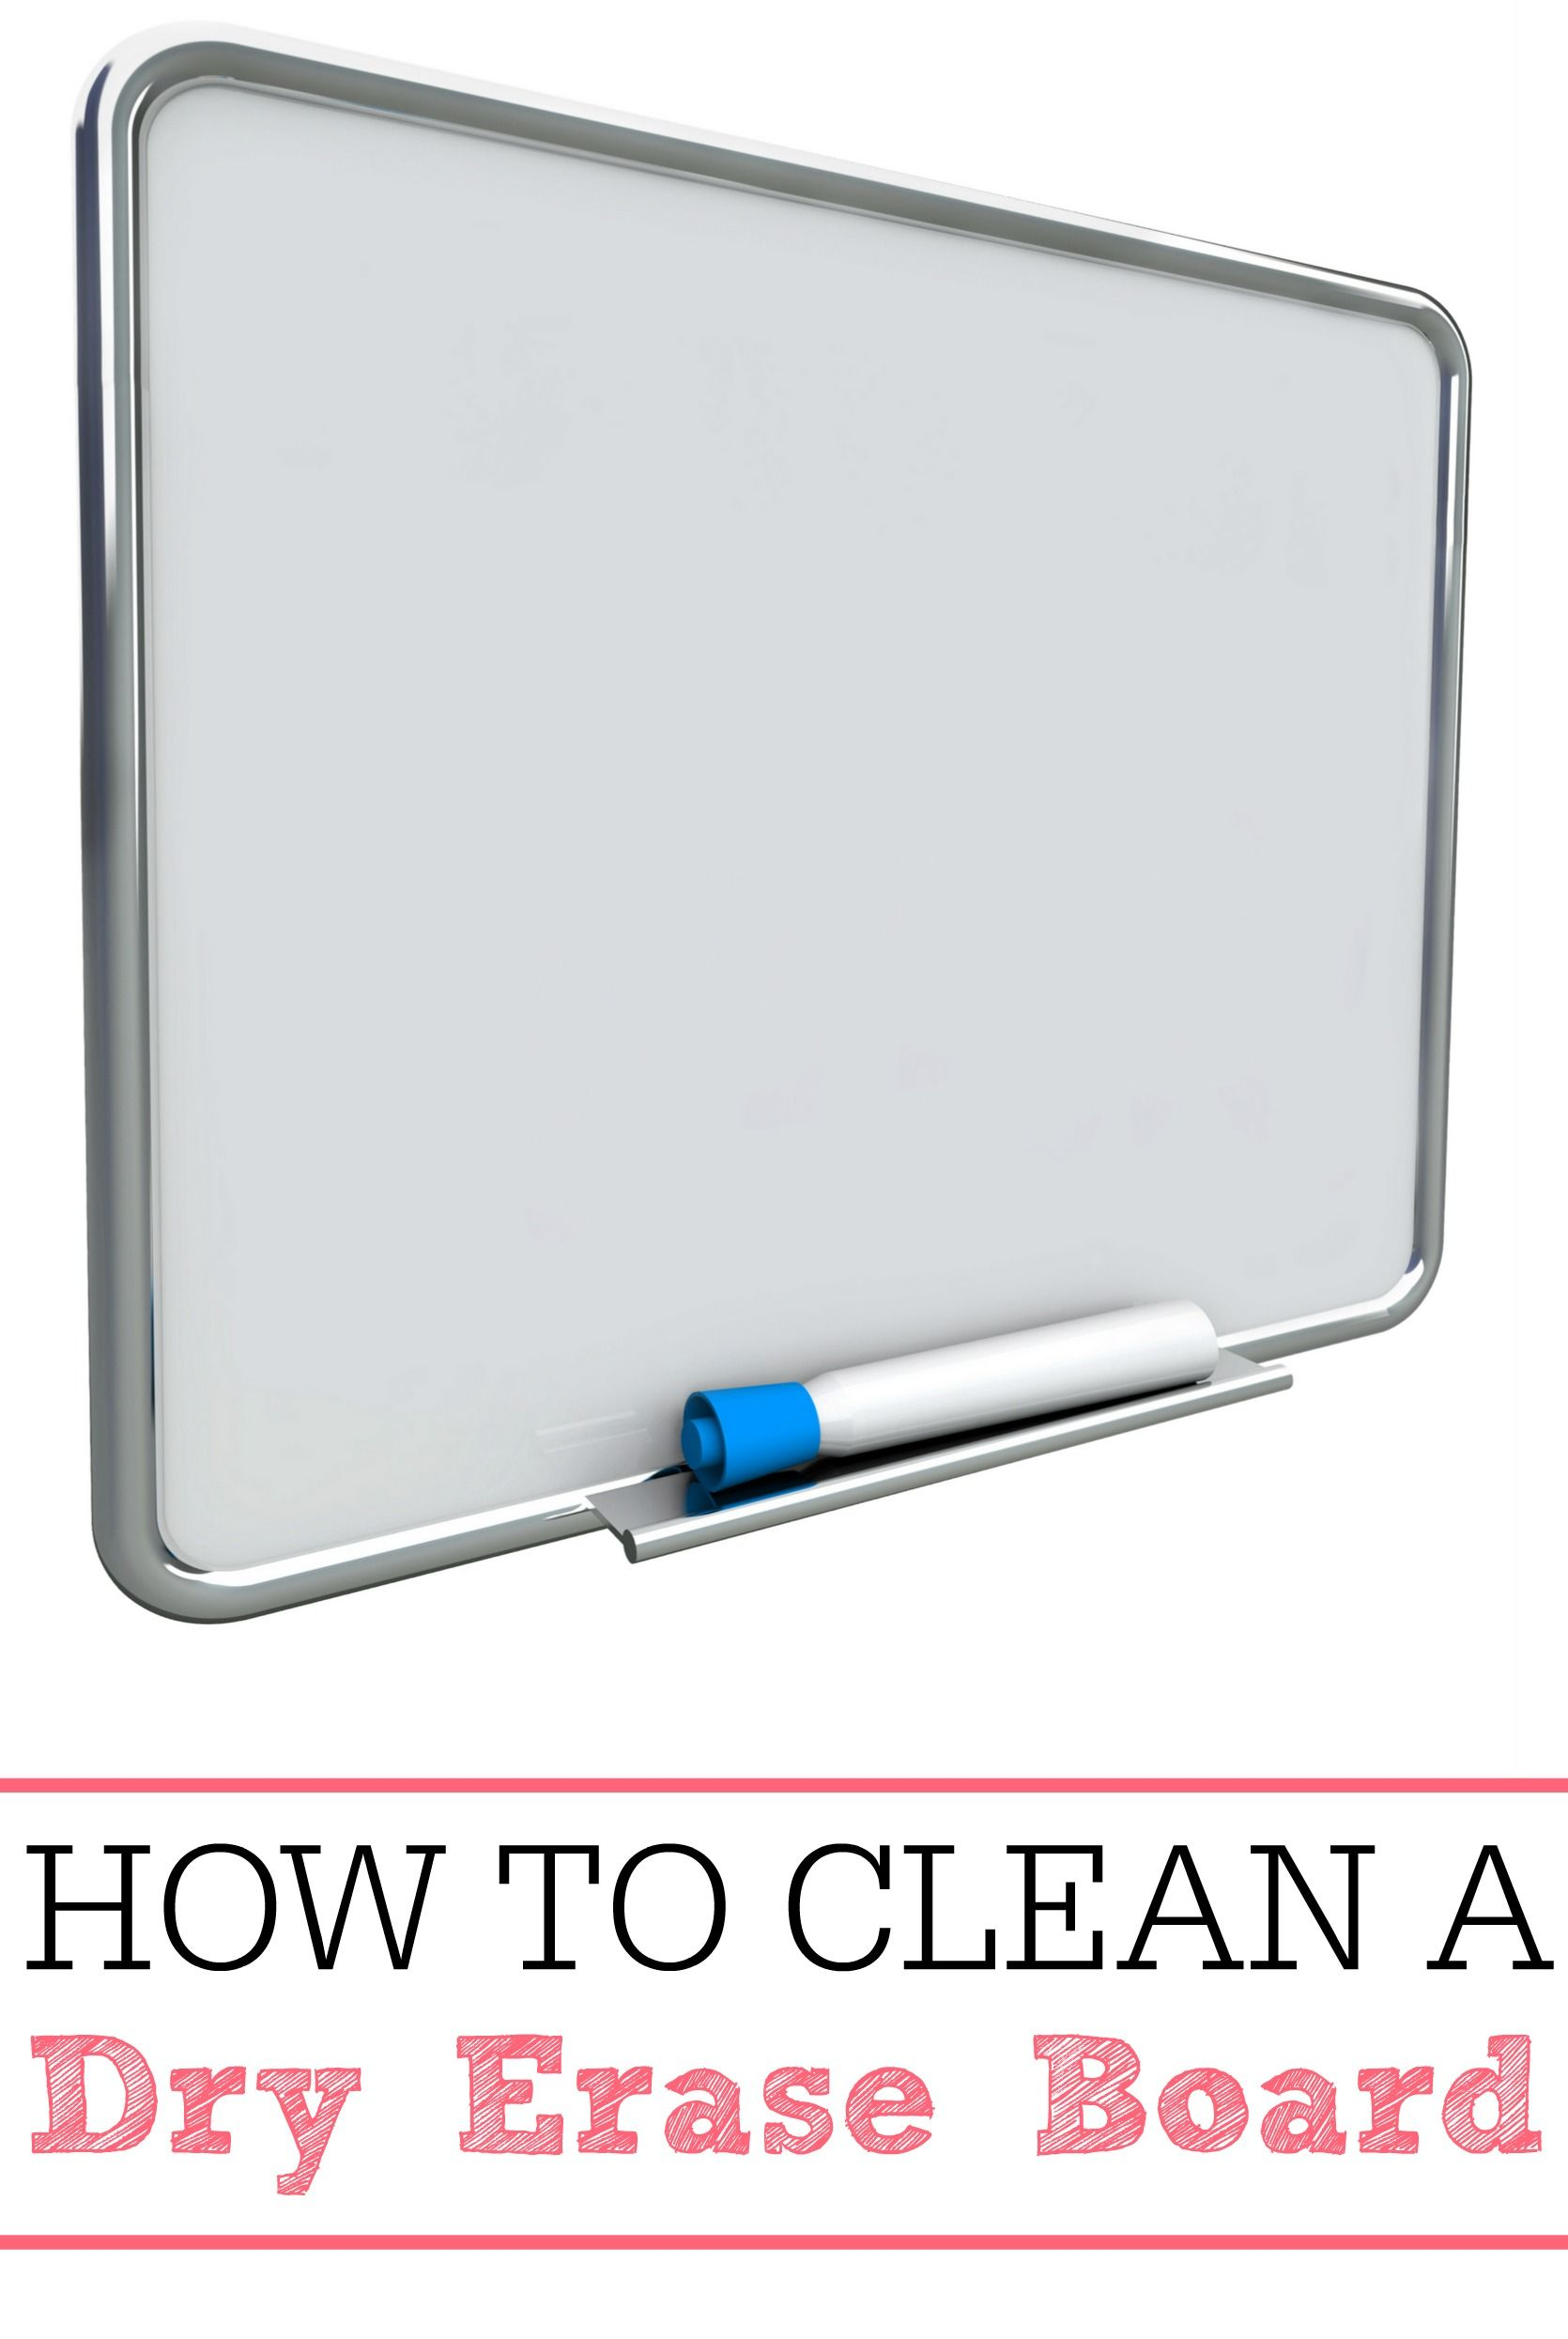 How To Clean A Dry Erase Board Dry Erase Board Diy Dry Erase Board Clean Dry Erase Board